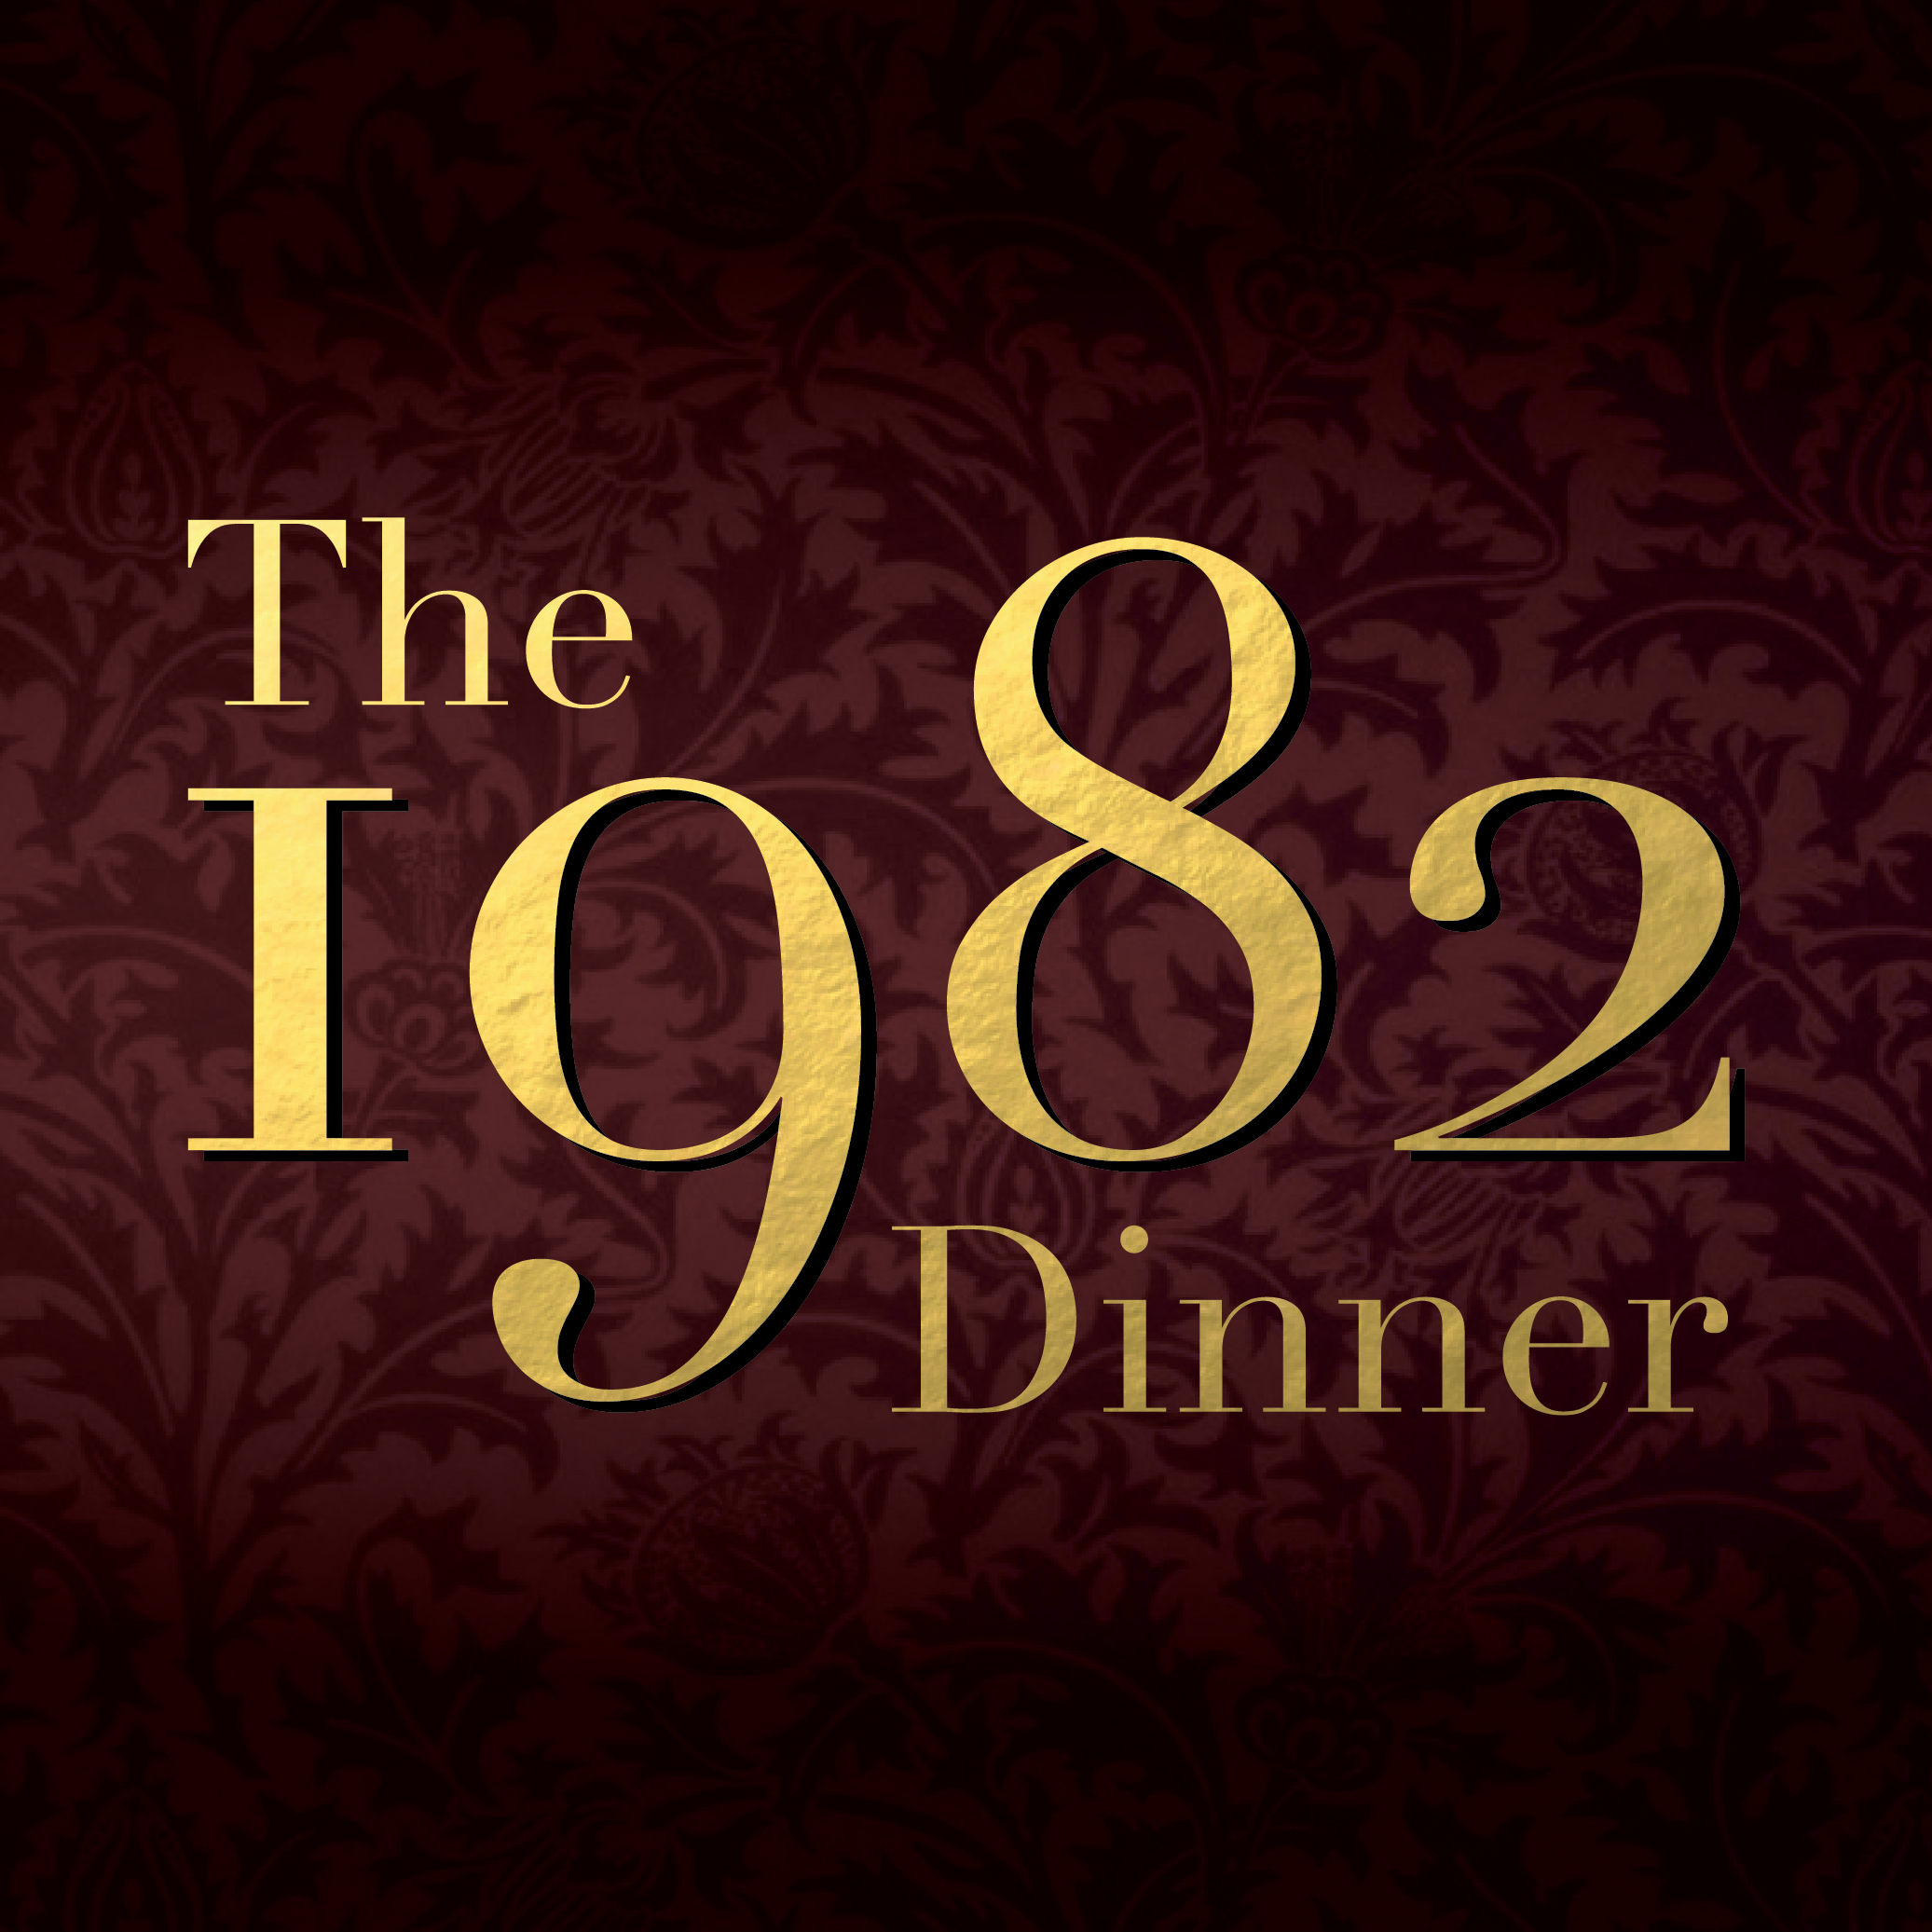 The 1982 Dinner Peninsula Beverly Hills December 14, 2017